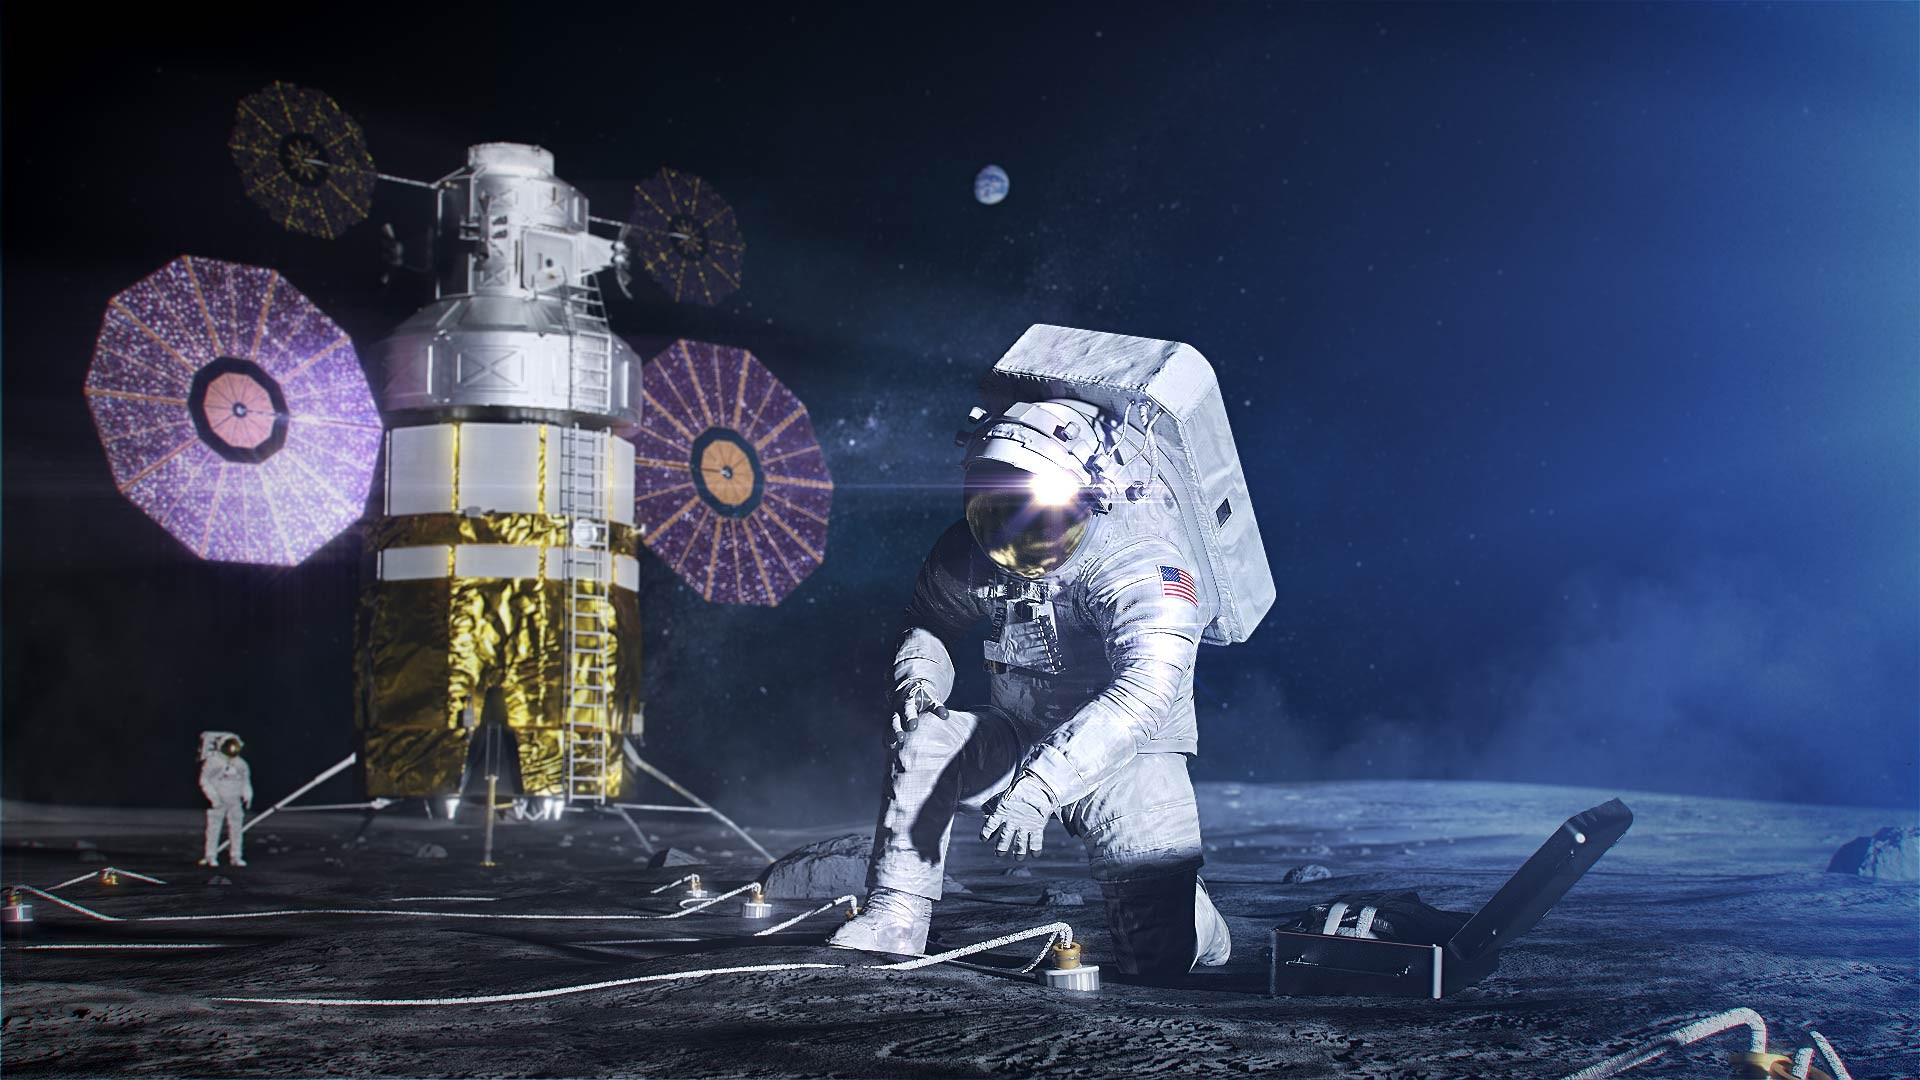 The 17 biggest lunar missions leading up to NASA's 2024 moon landing